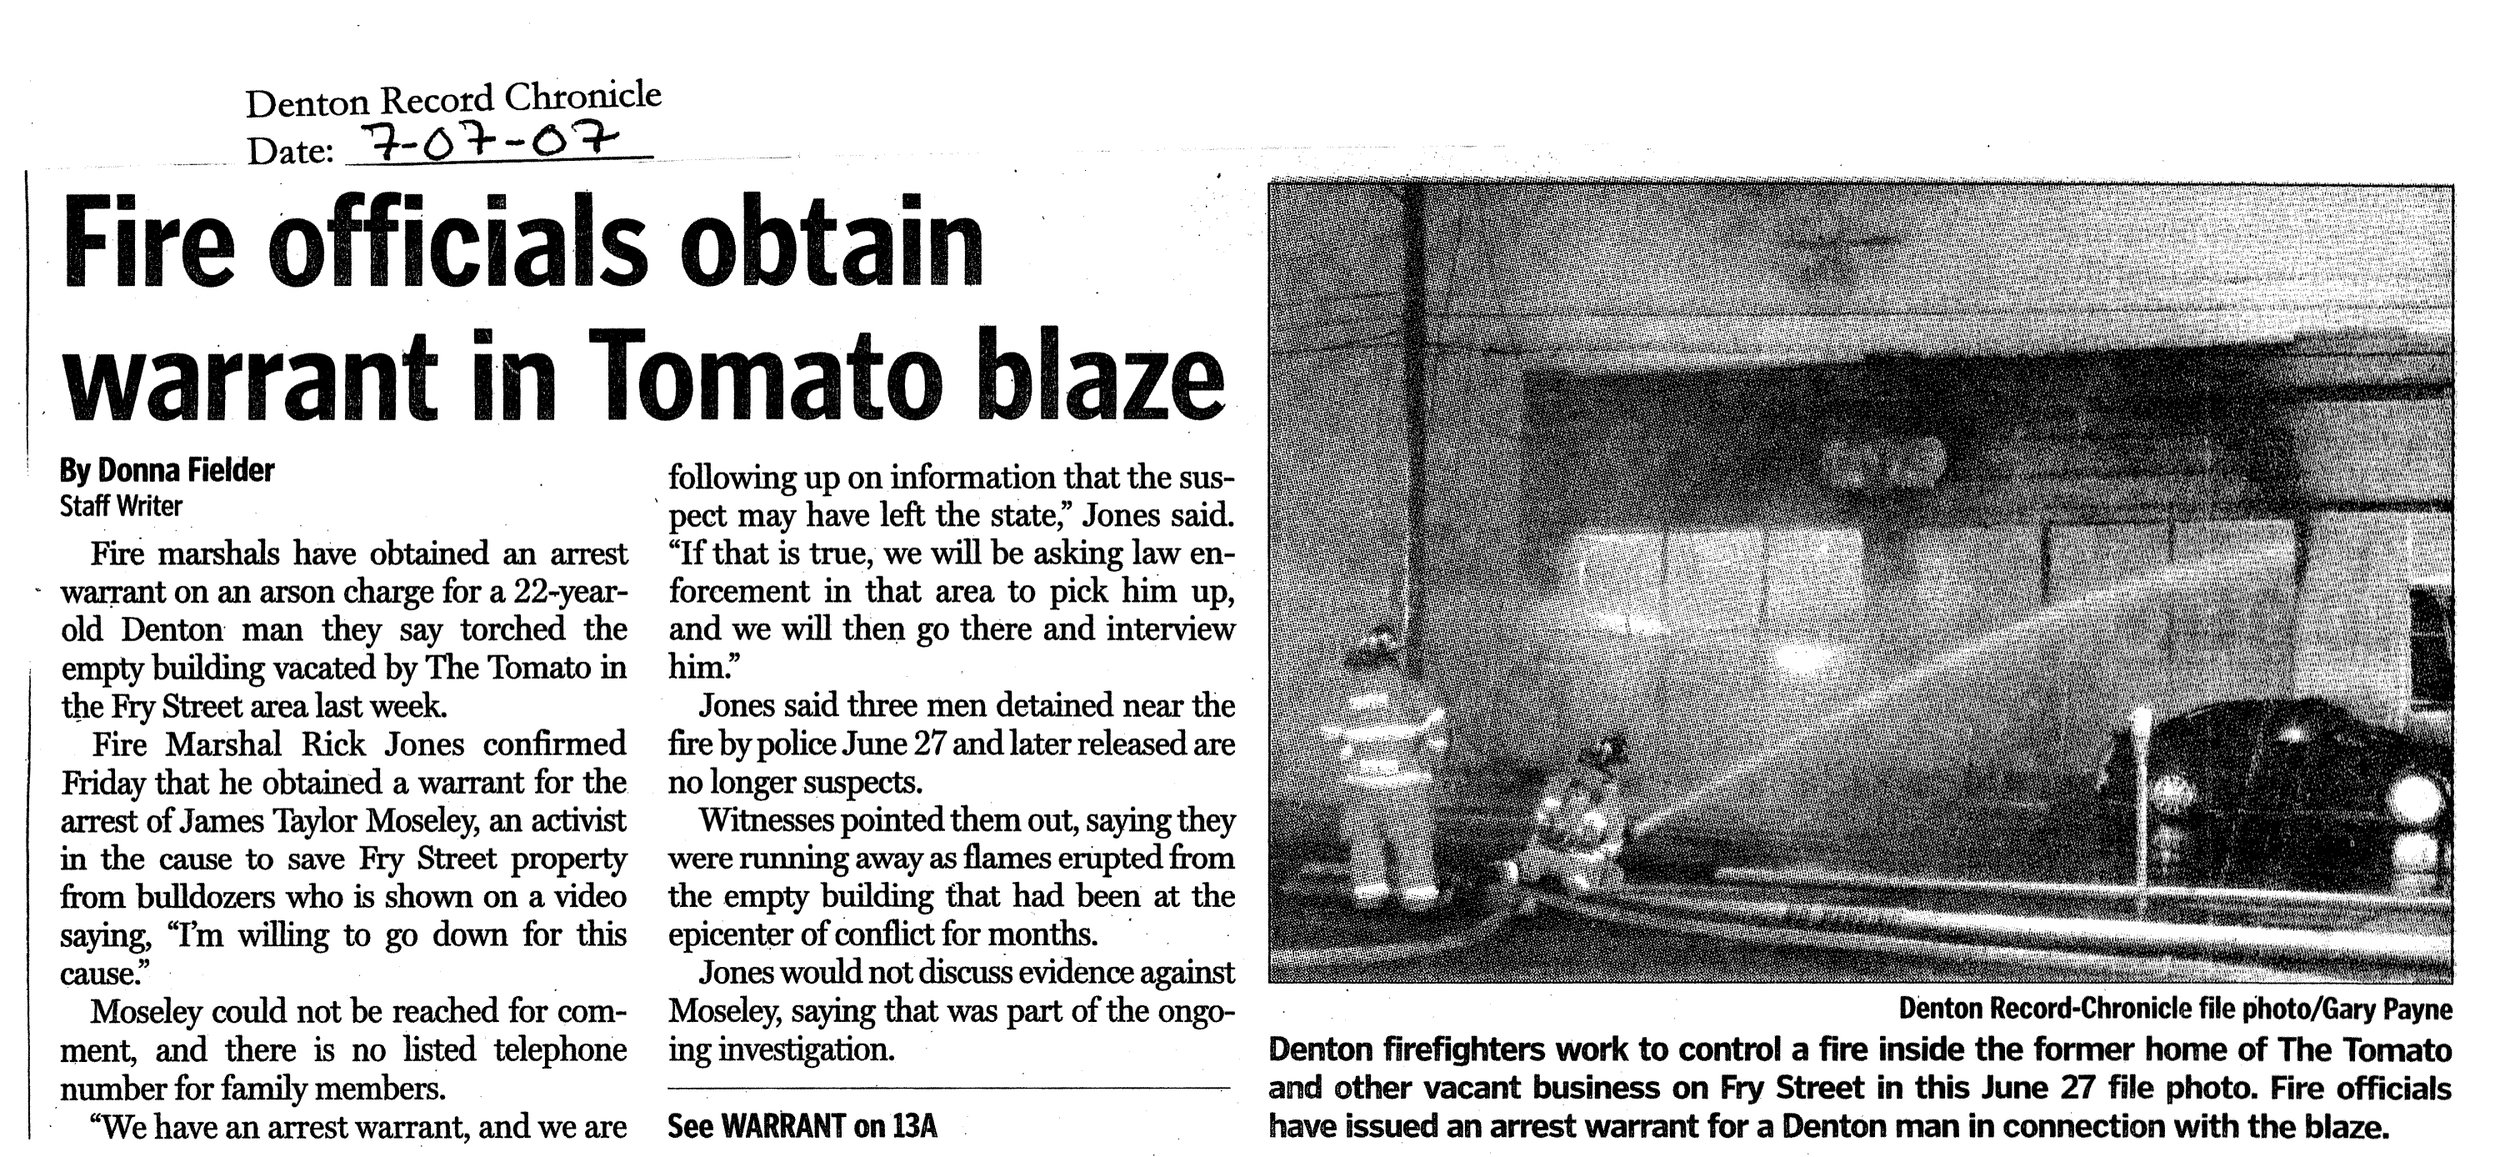 Newspaper clipping from the Denton Record-Chronicle.